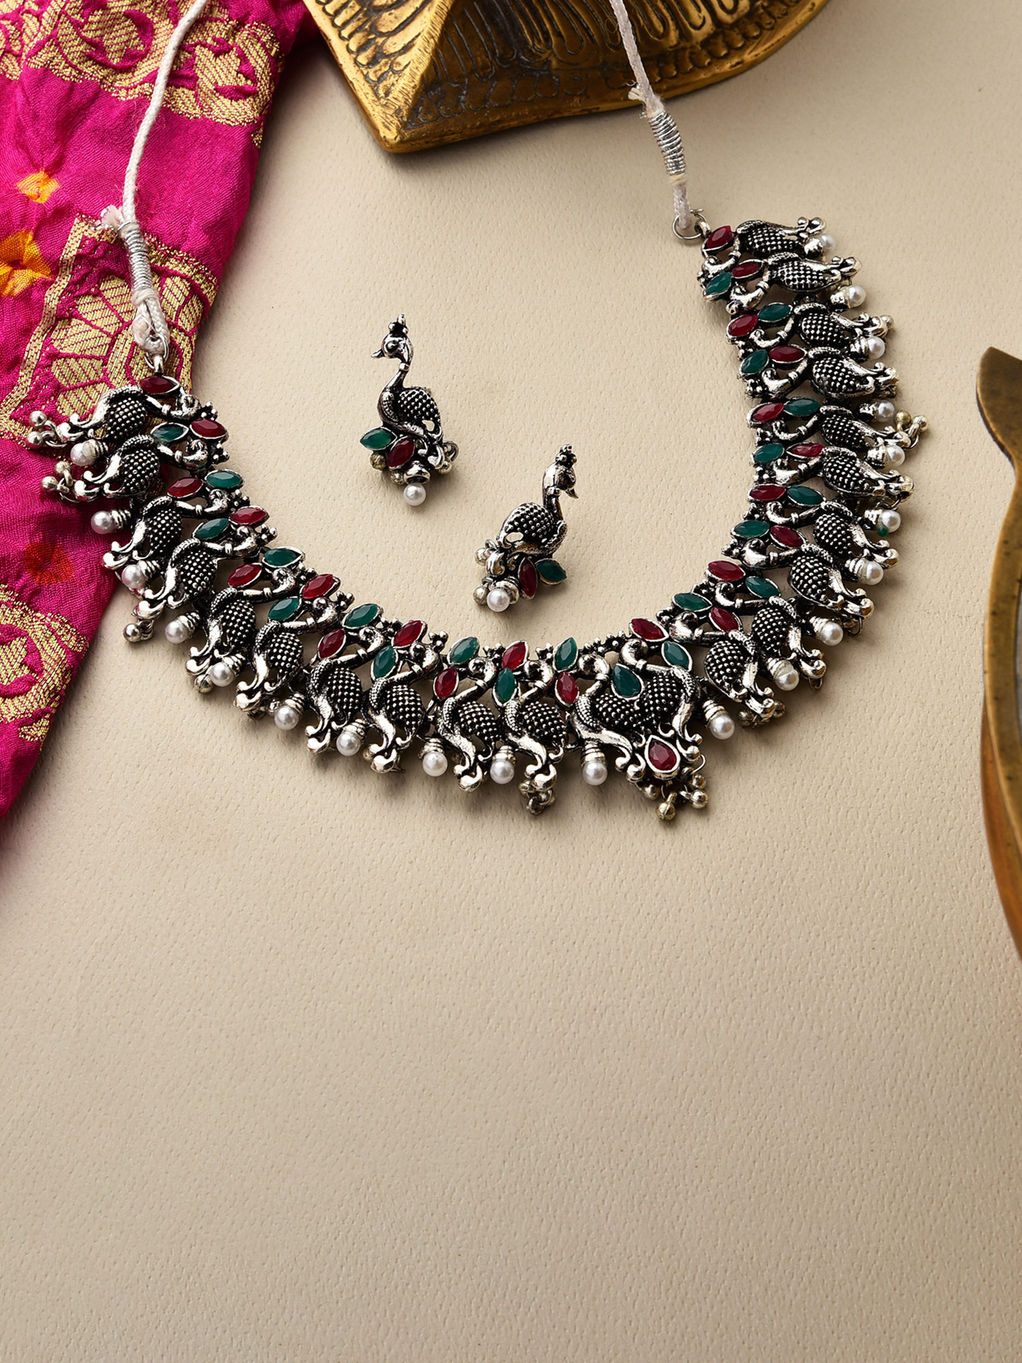 Pretty as a Peacock fuchsia rhinestone crystal necklace and earring set